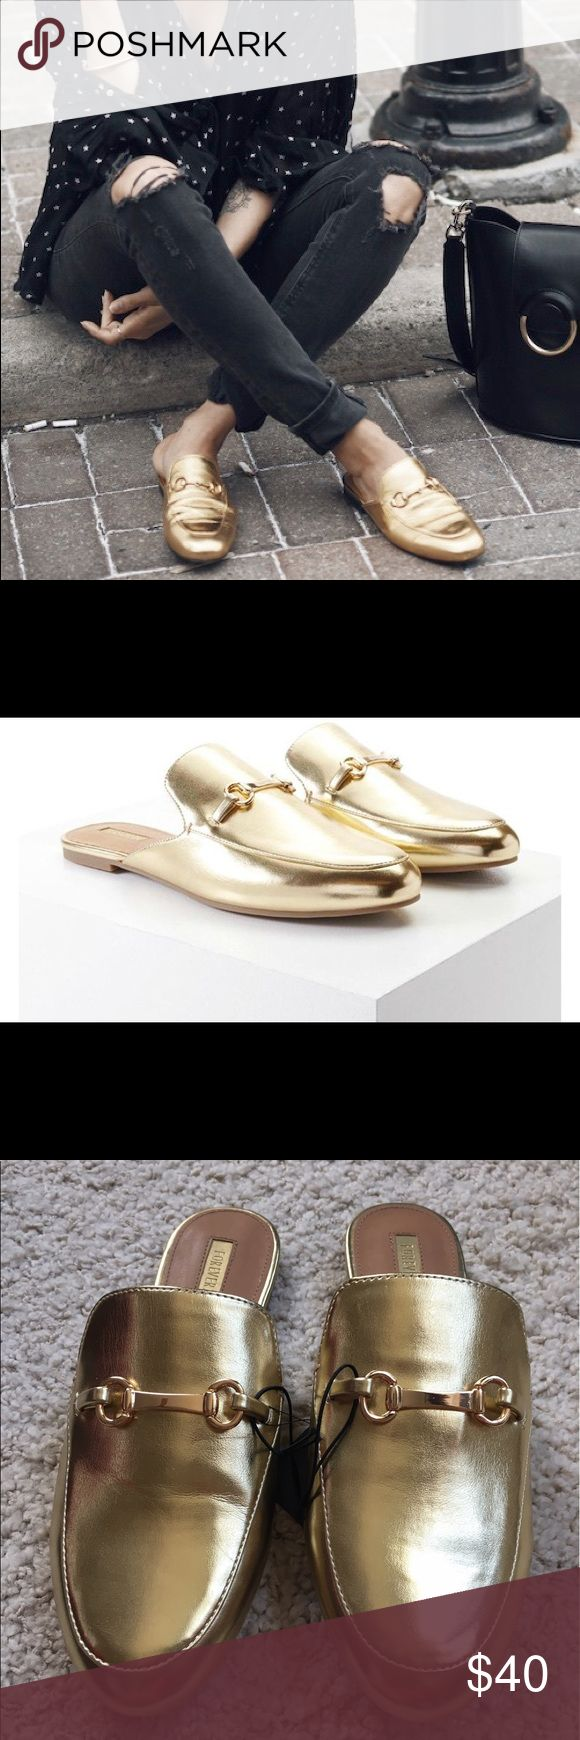 Princetown Metallic Gold Slipper Mule A pair of faux leather loafer mules featuring a metallic design, an almond toe, high-polish bar, a slight heel, and an open back.  DESCRIPTION The Princetown slipper is reintroduced in metallic gold with symbolic gold-tone Horsebit. Forever 21 Shoes